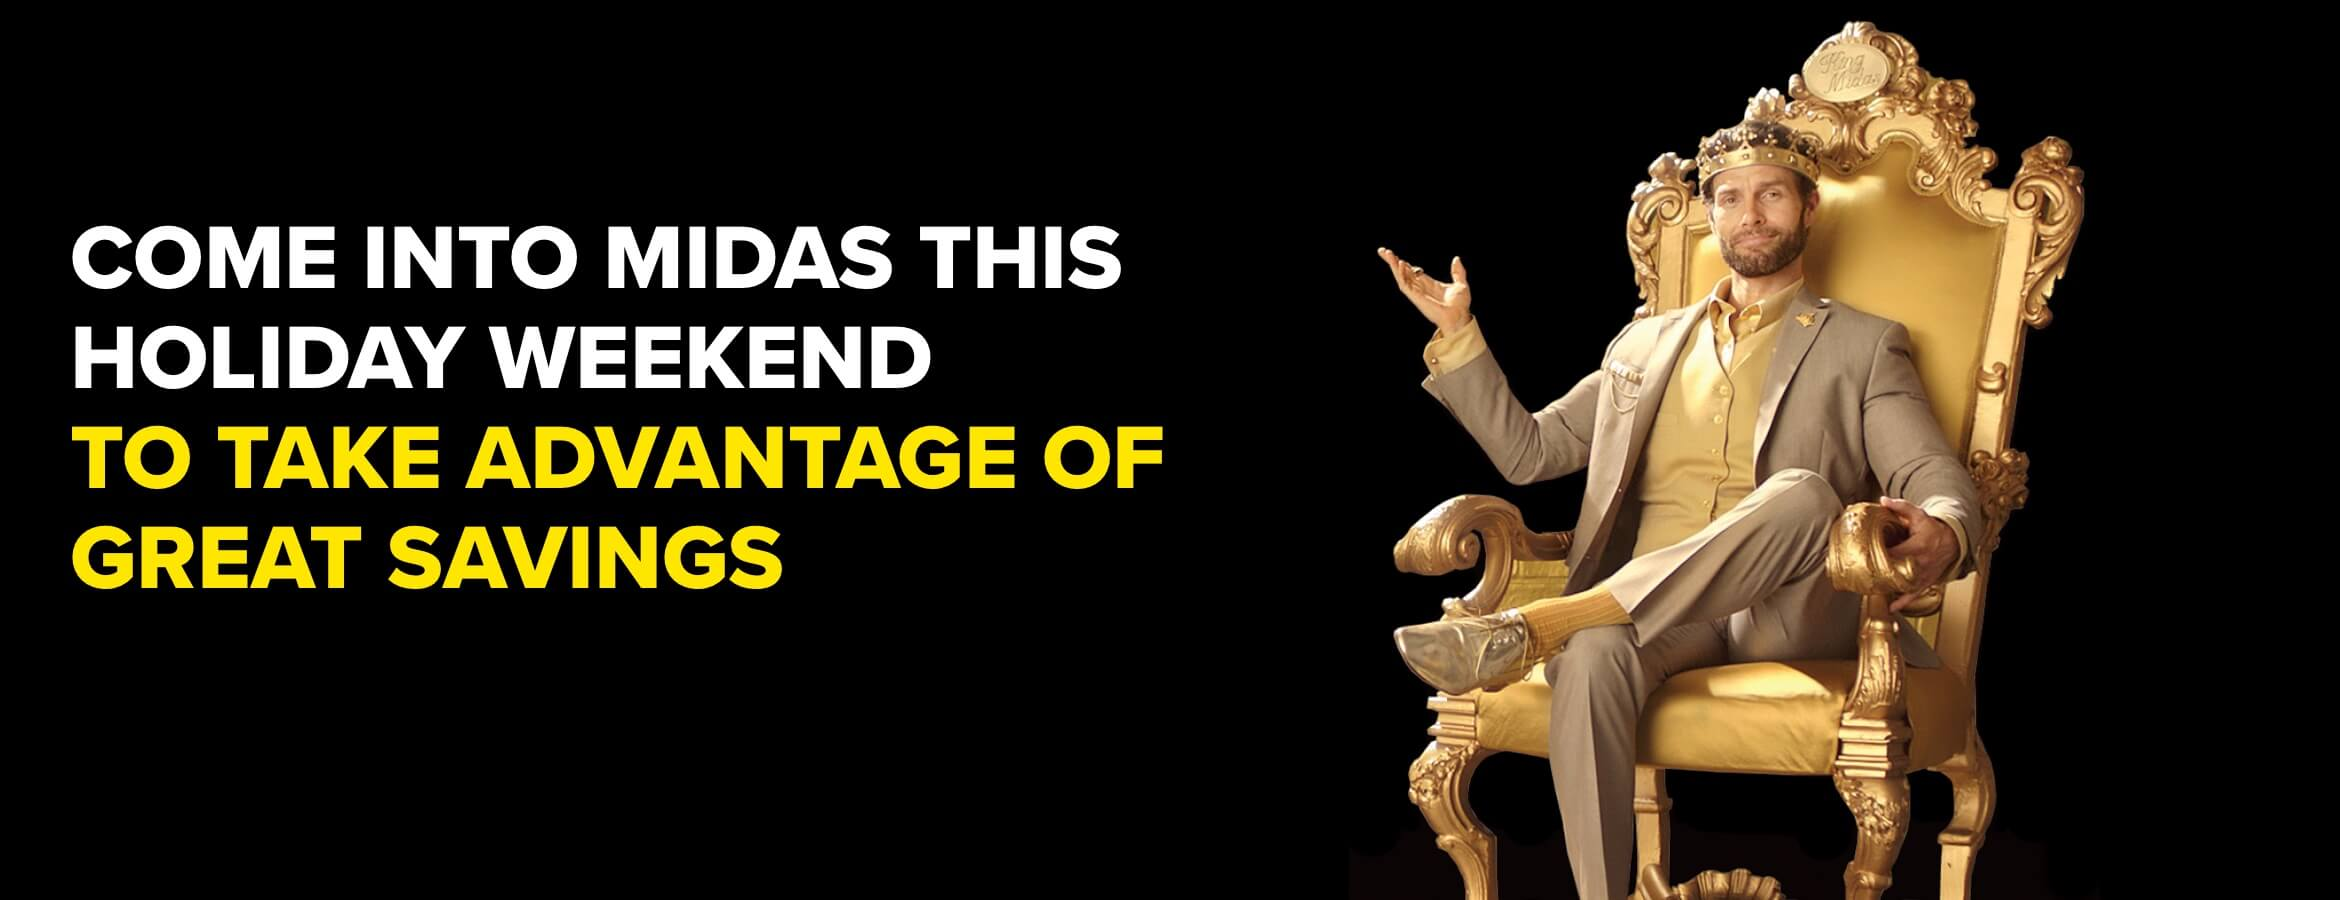 Come into Midas this holiday weekend to take advantage of great savings.